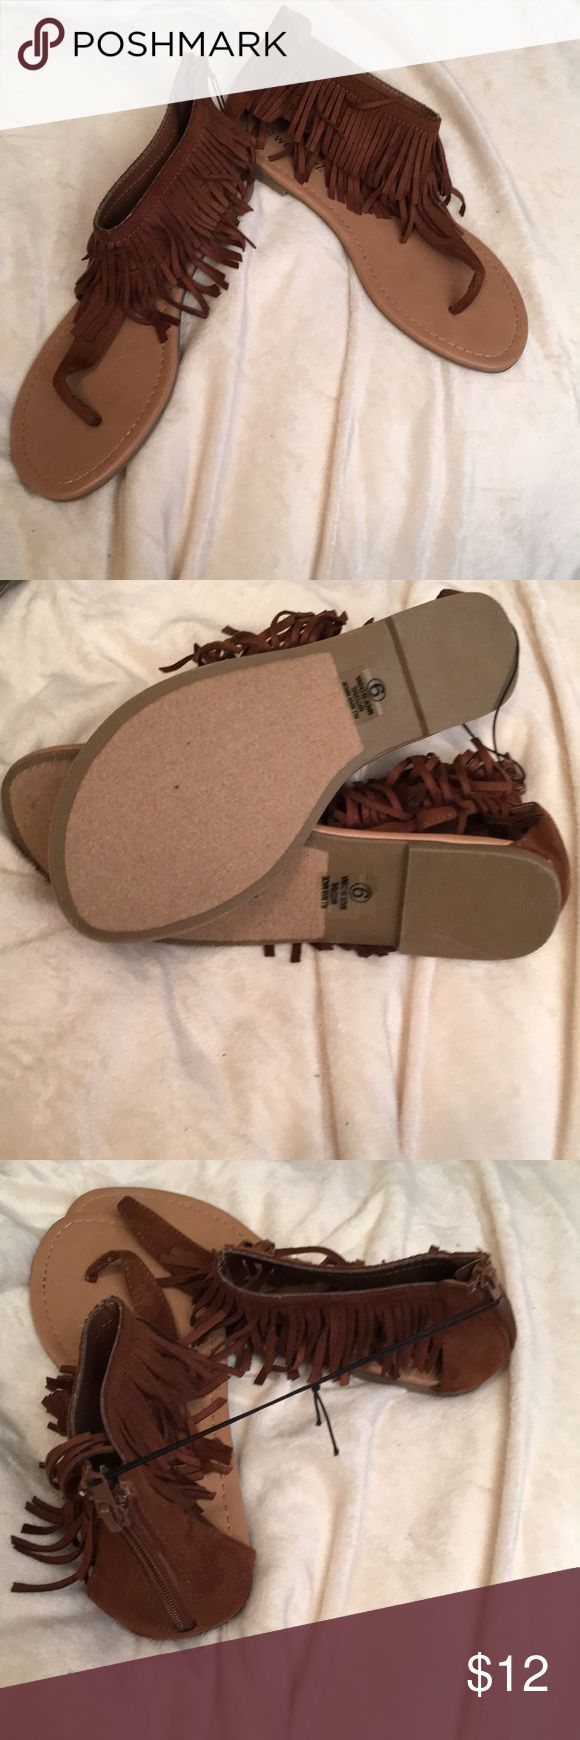 Wet seal New without actual tag Wet Seal Shoes Sandals